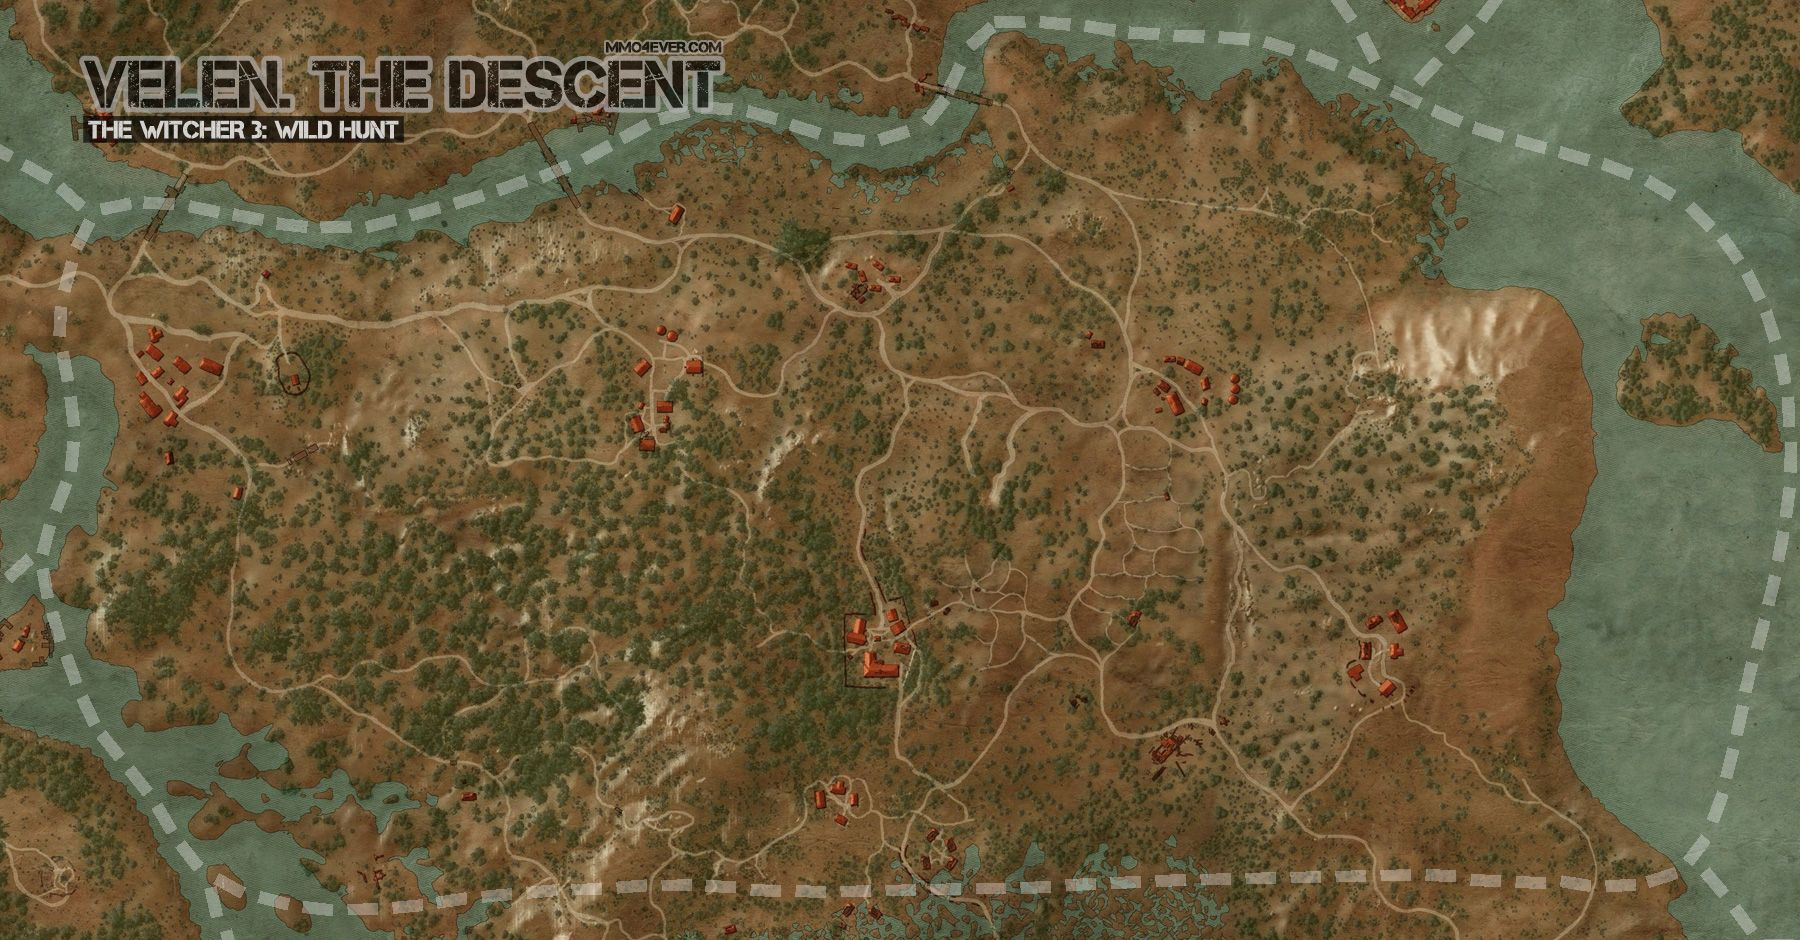 Velen, The Descent Map | The Witcher 3: Wild Hunt Maps & Quests